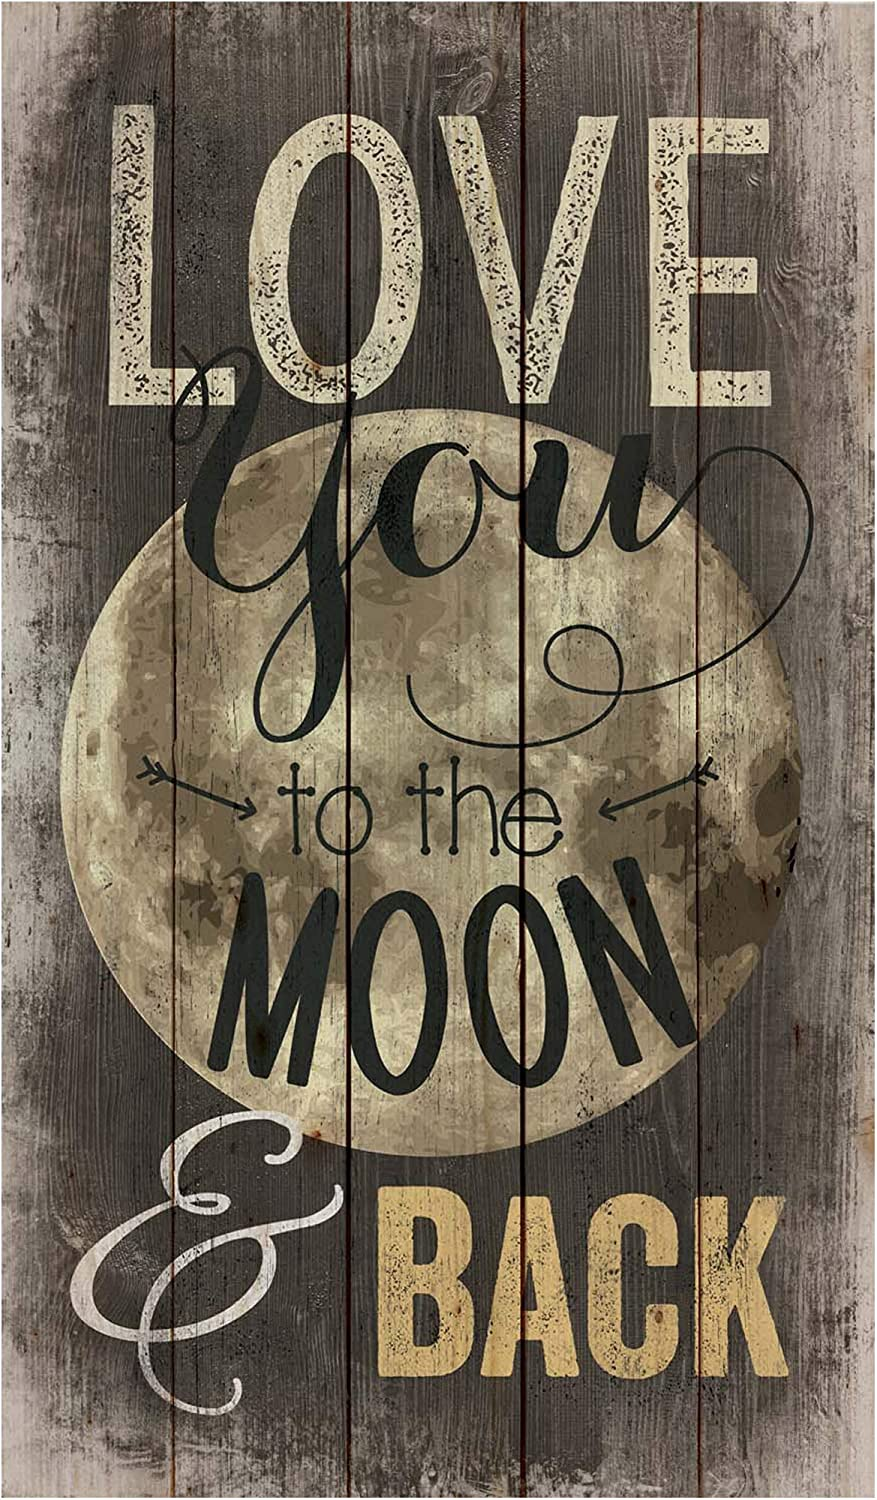 P. Graham Dunn Love You to The Moon and Back Distressed Design 24 x 14 Wood Pallet Wall Art Sign Plaque